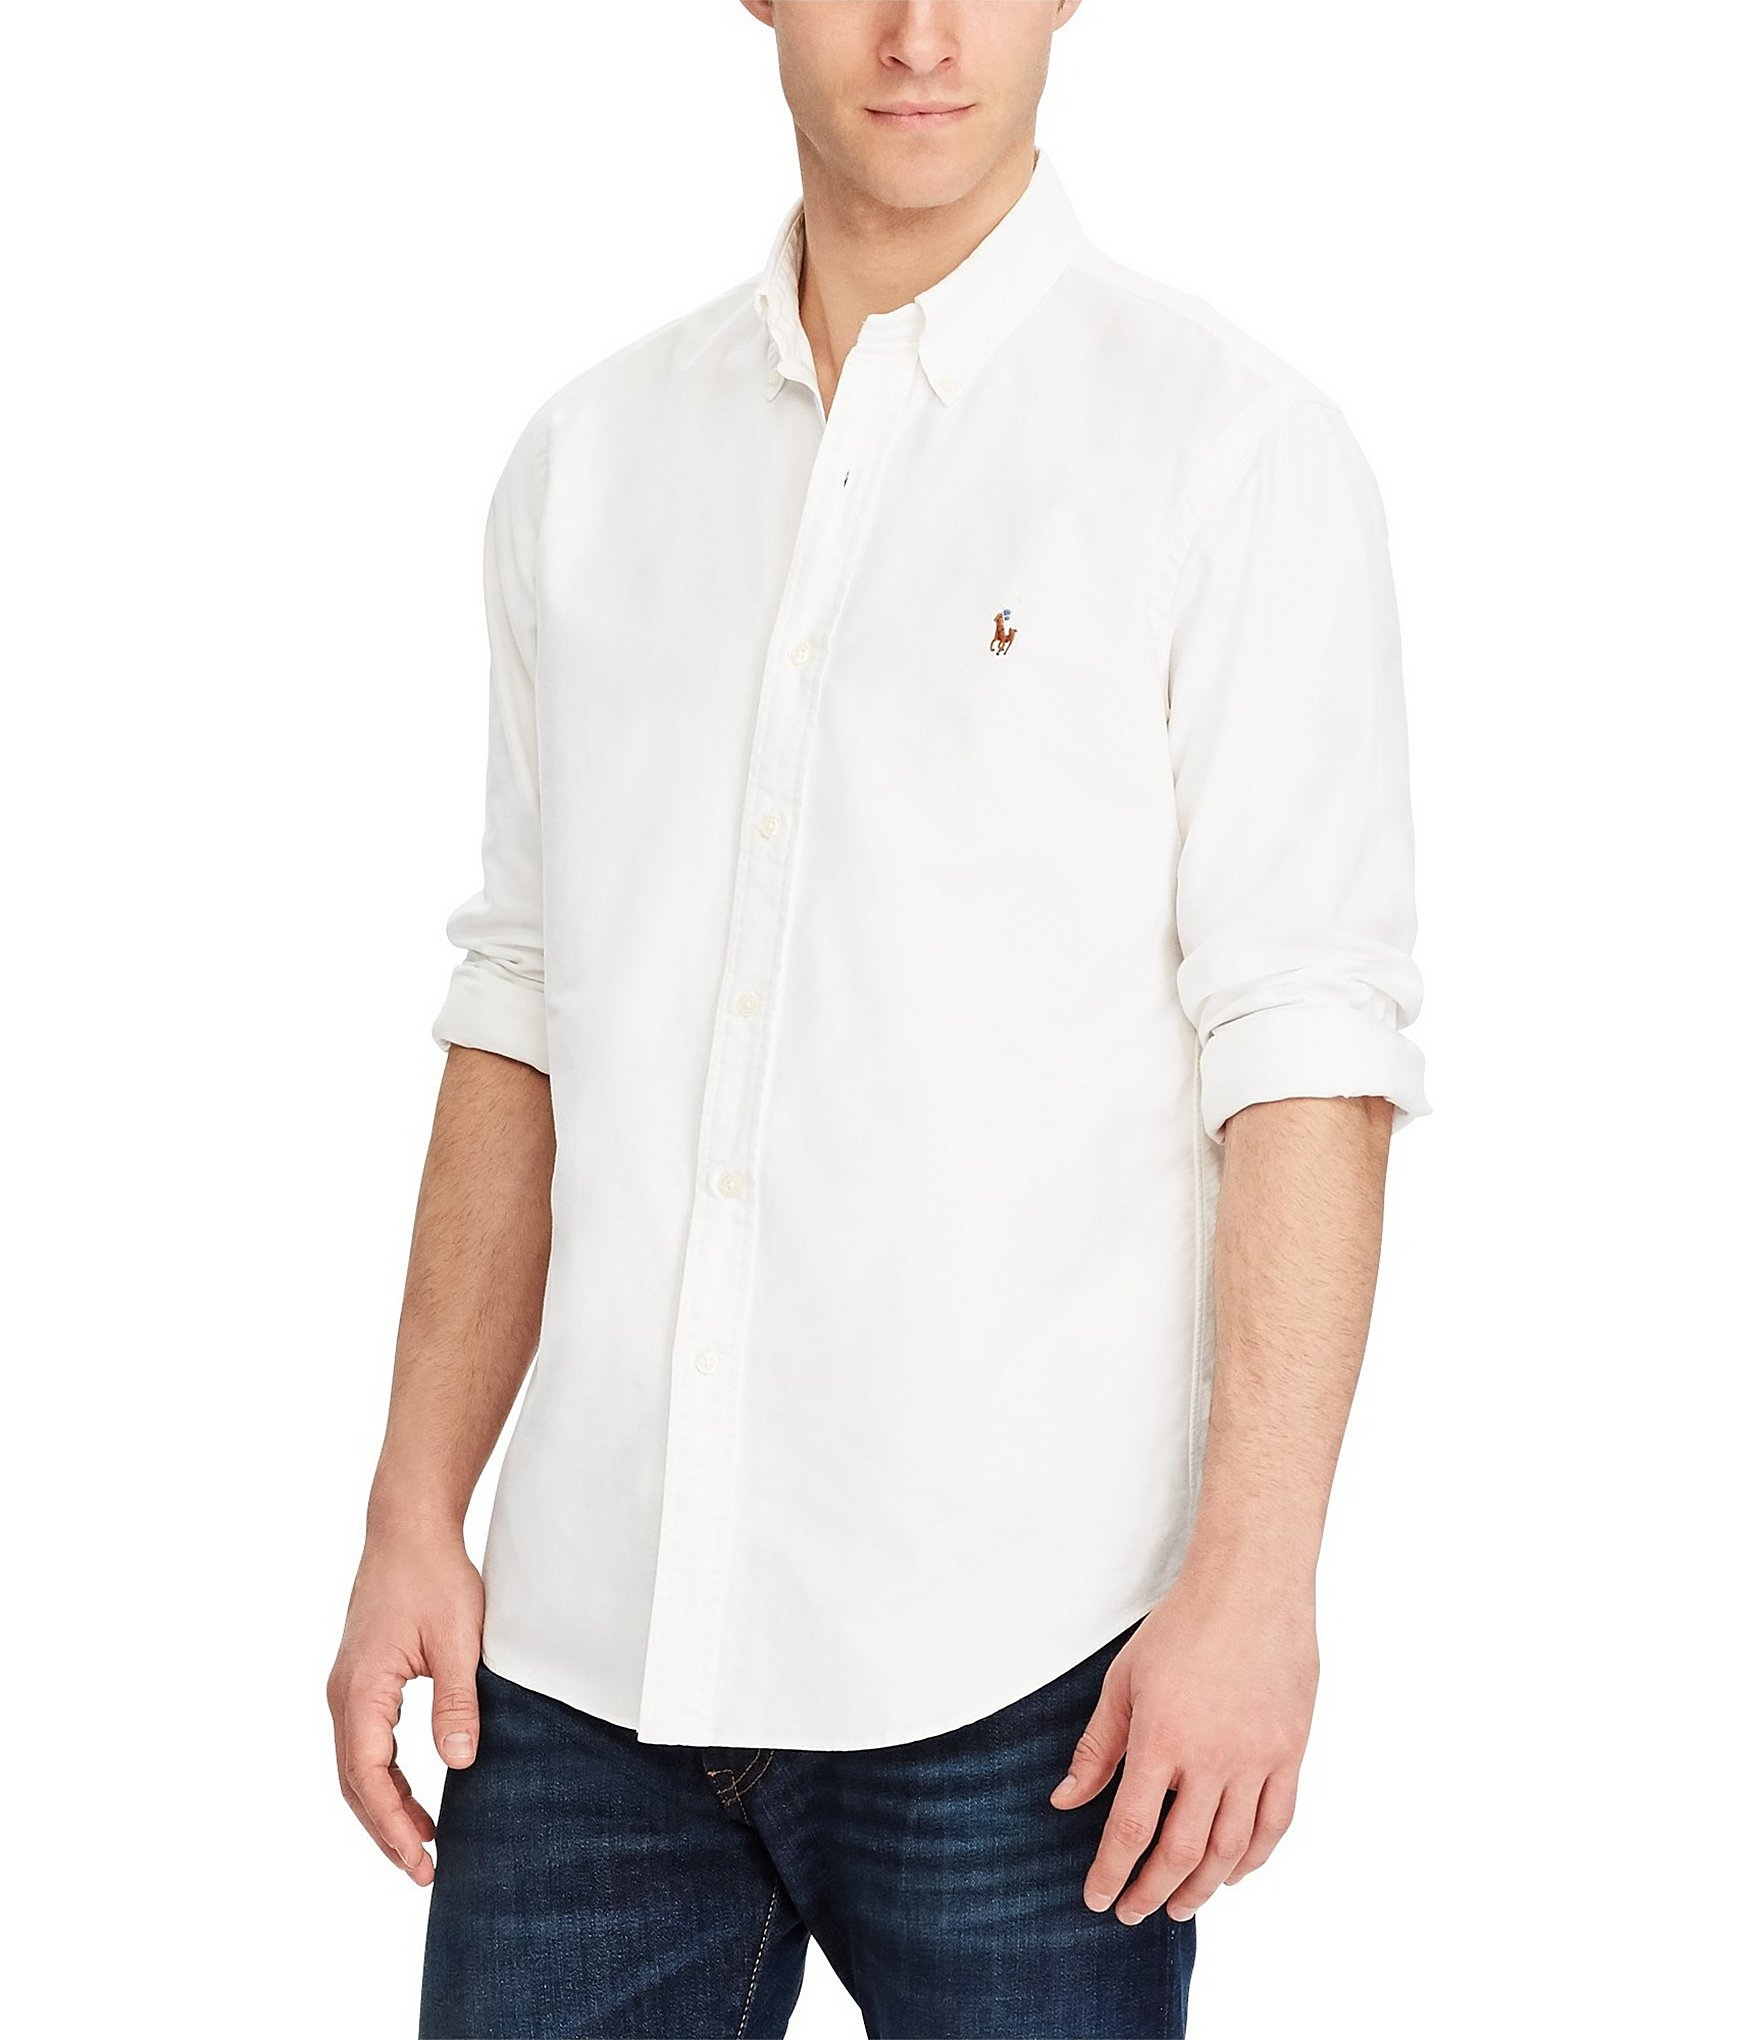 a4b8e1cc Men's Casual Button-Front Shirts | Dillard's